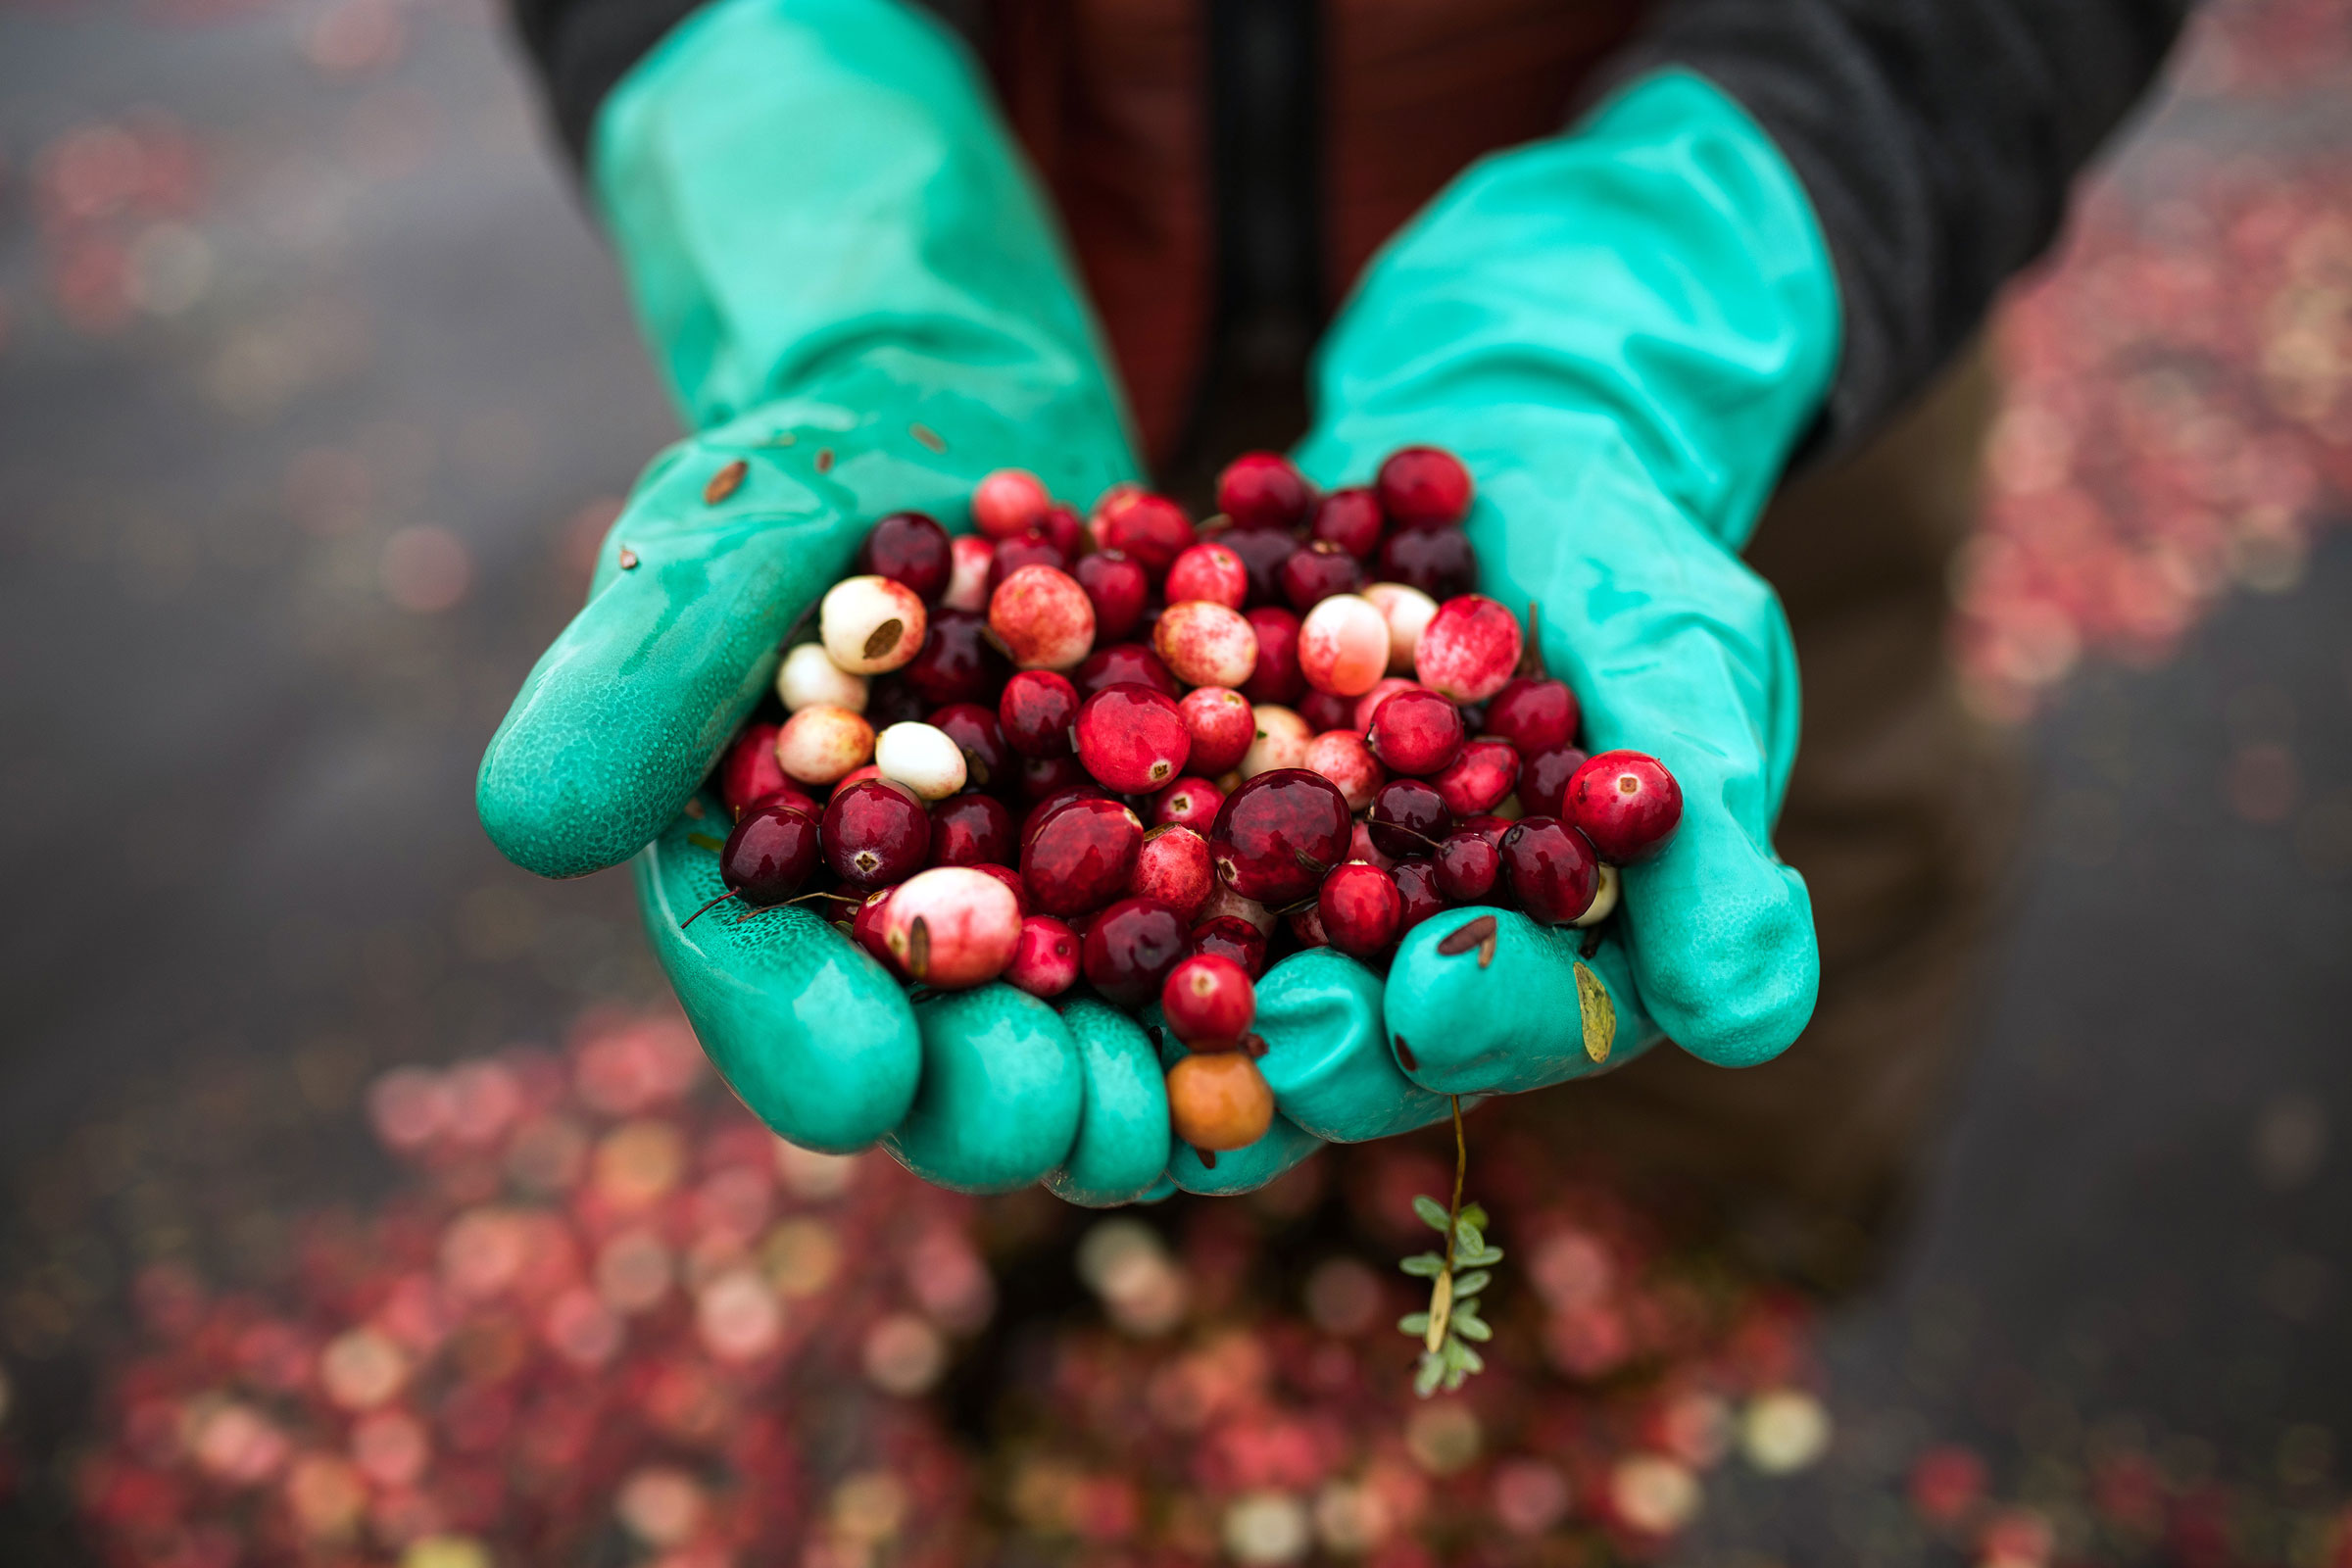 Gloved hands holding a handful of freshly picked cranberries.